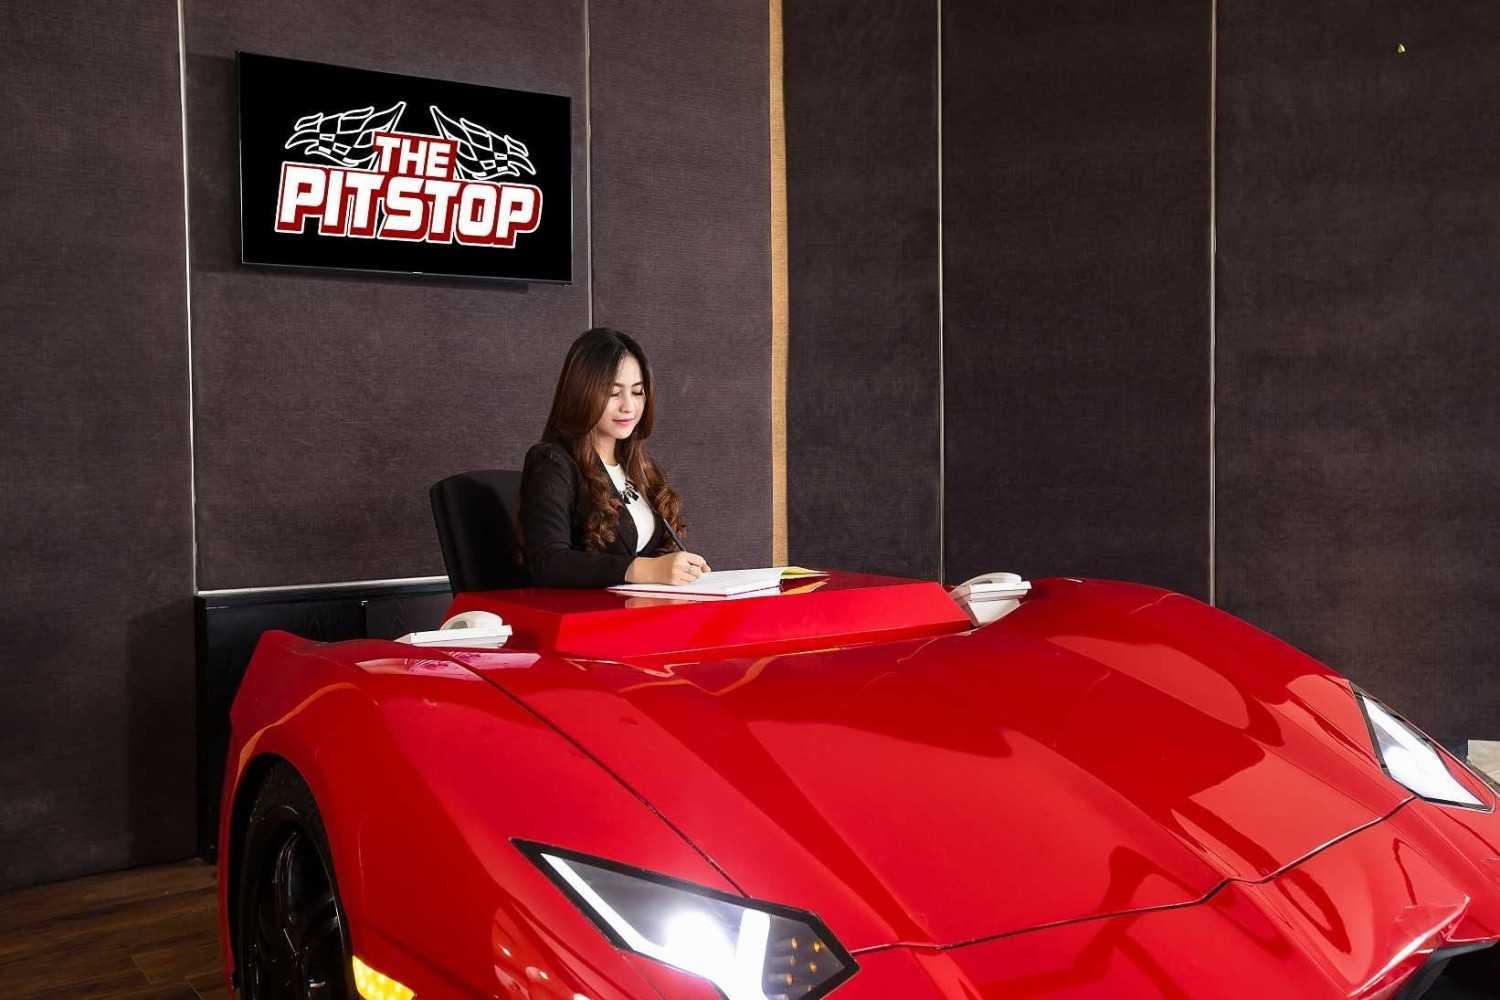 Aqustica The Pitstop Sportscar Showroom Palembang, Indonesia Palembang, Indonesia Pitstop-Interior-By-Lconcept-Photography-08978803888-24-Resize  29618